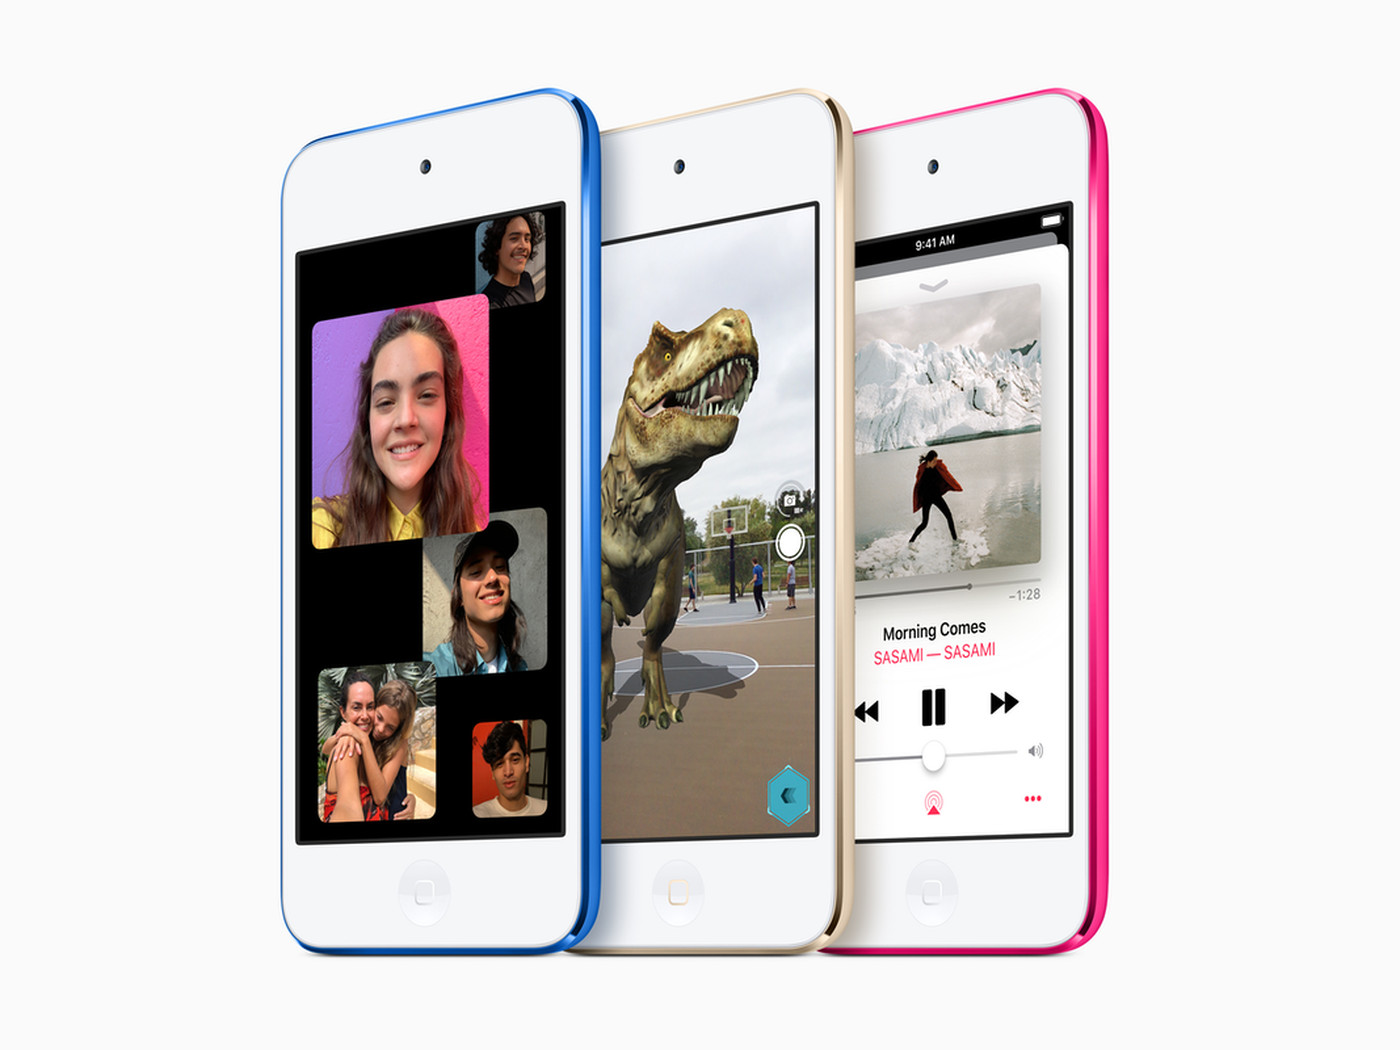 Apple Refreshes The Ipod Touch With The Iphone 7 S Processor The Verge